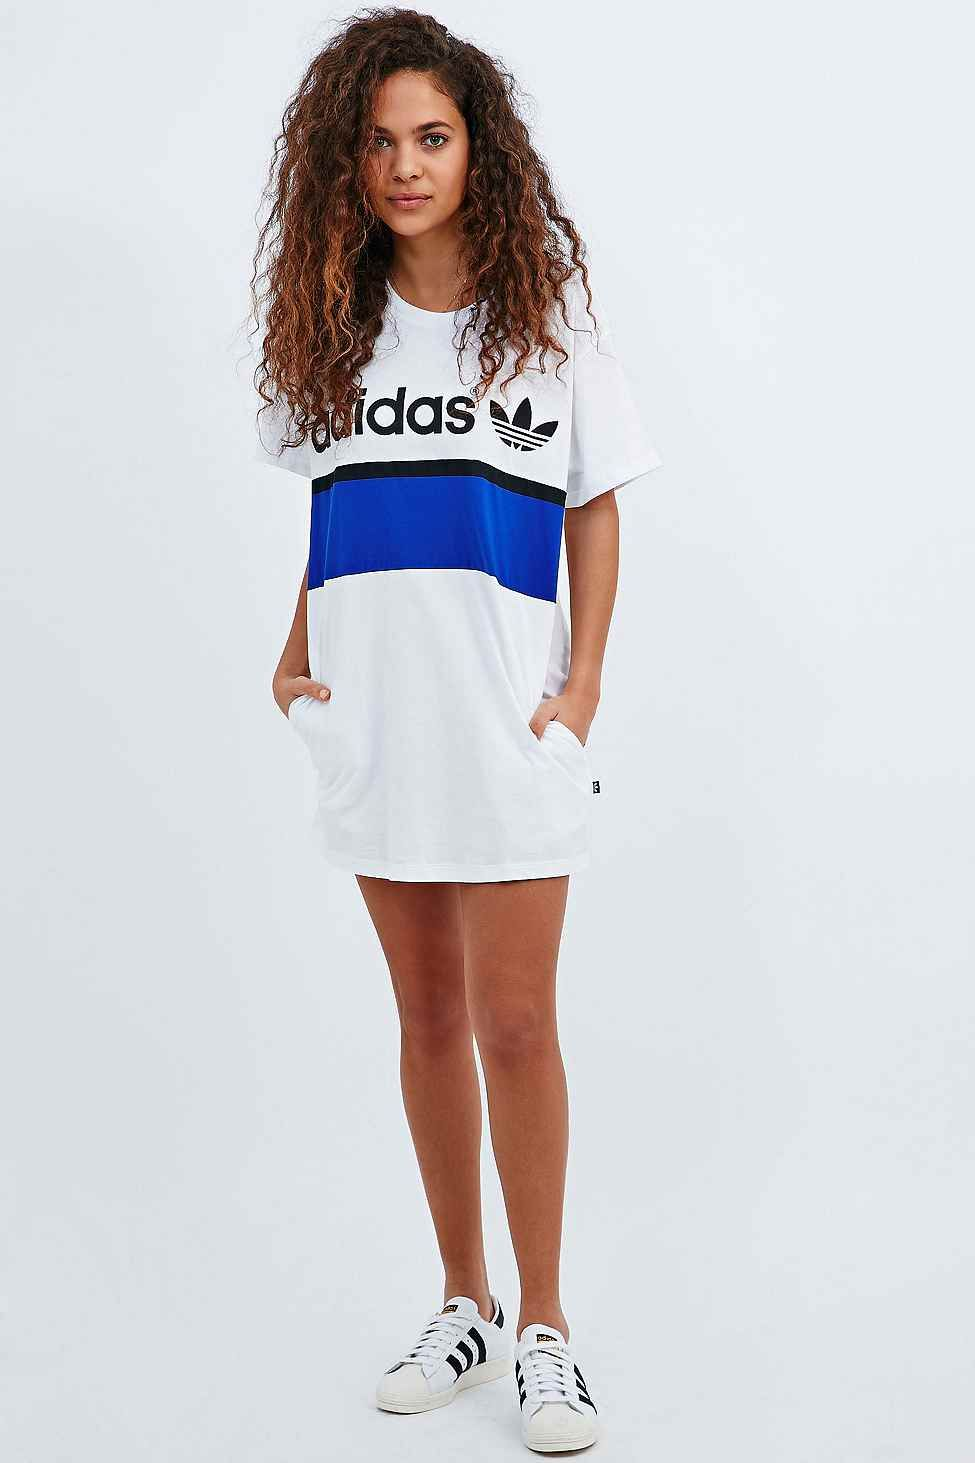 354bd2231 adidas City Tee Dress in White | Fashion | Adidas dress, Adidas ...